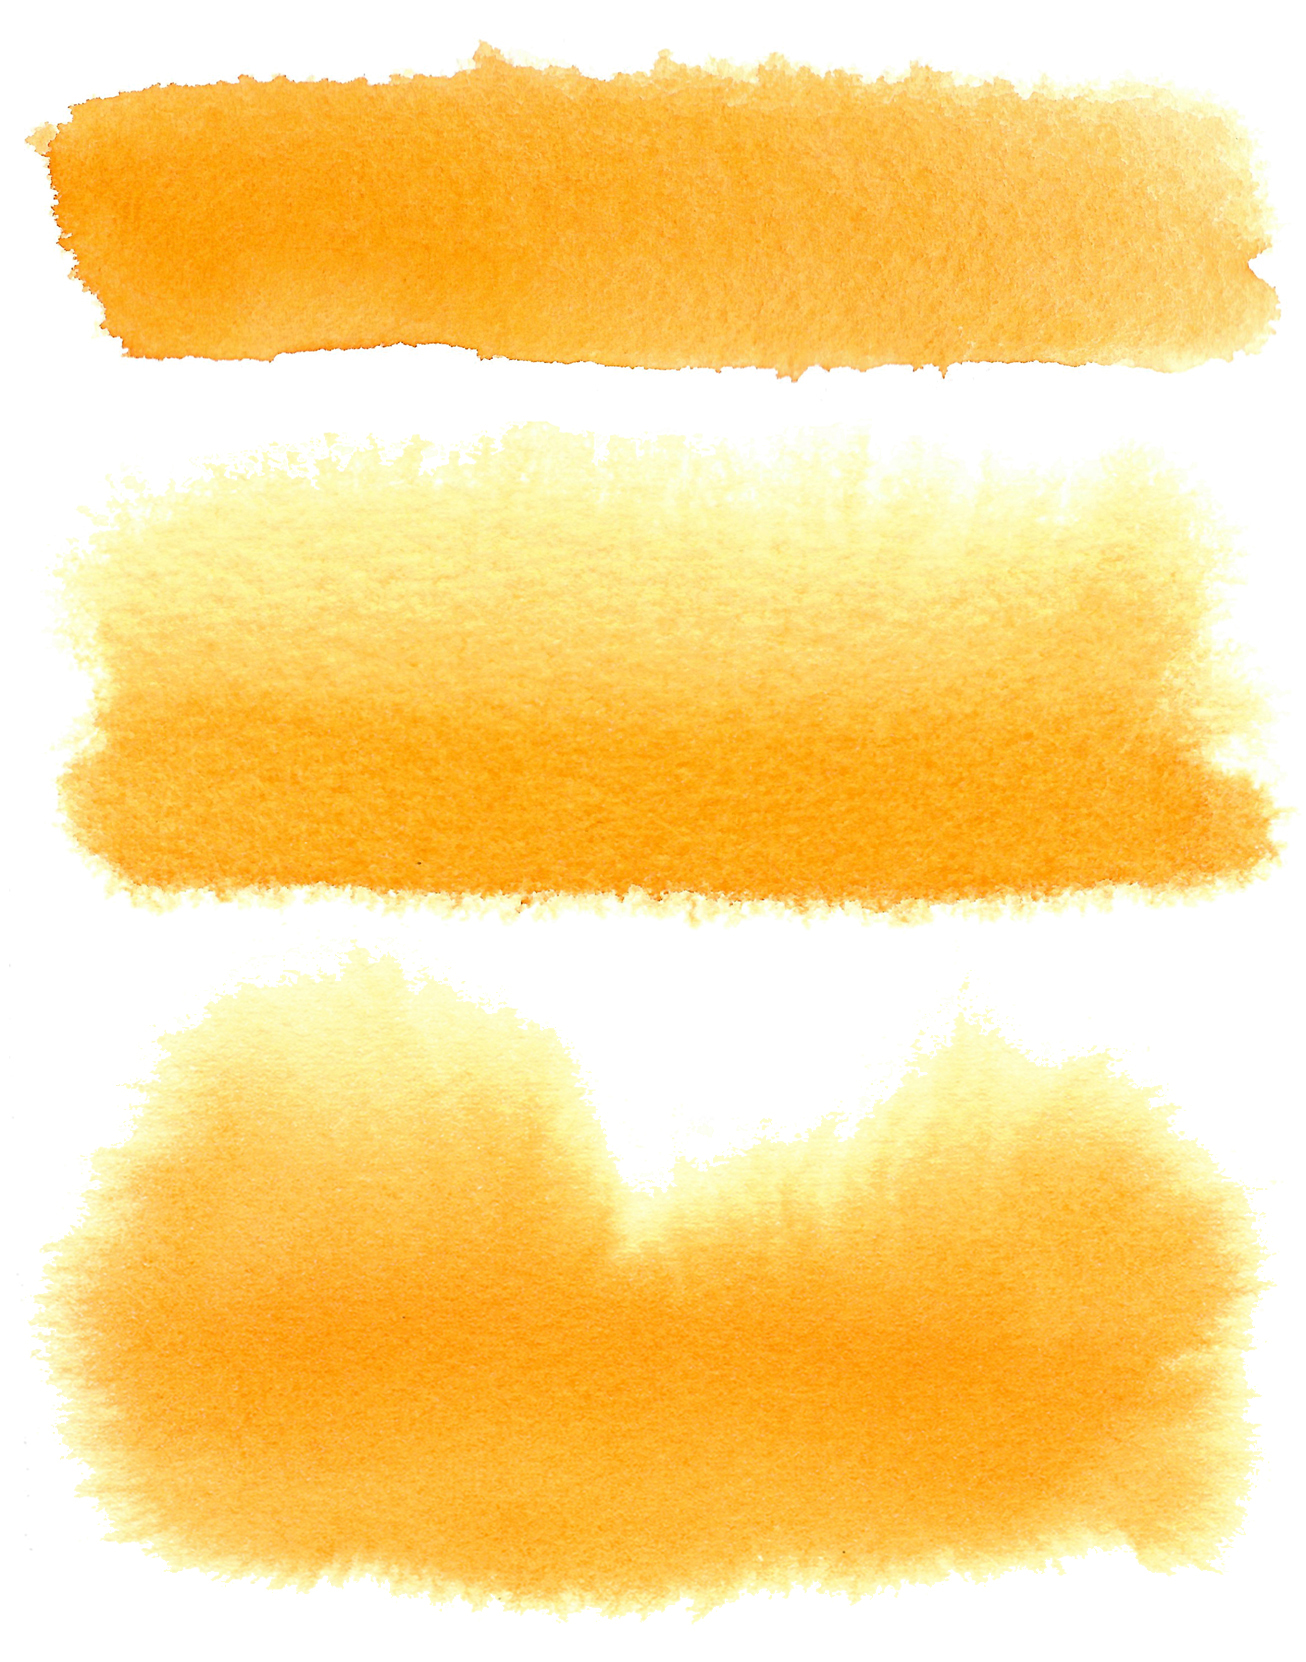 PY110 active in wet: Dispersement of PY110 when applied to wet papers. Top, applied to surfaced dampened paper with no sheen. Middle, applied to saturated paper with no sheen. Bottom, applied to saturated paper with visible sheen.